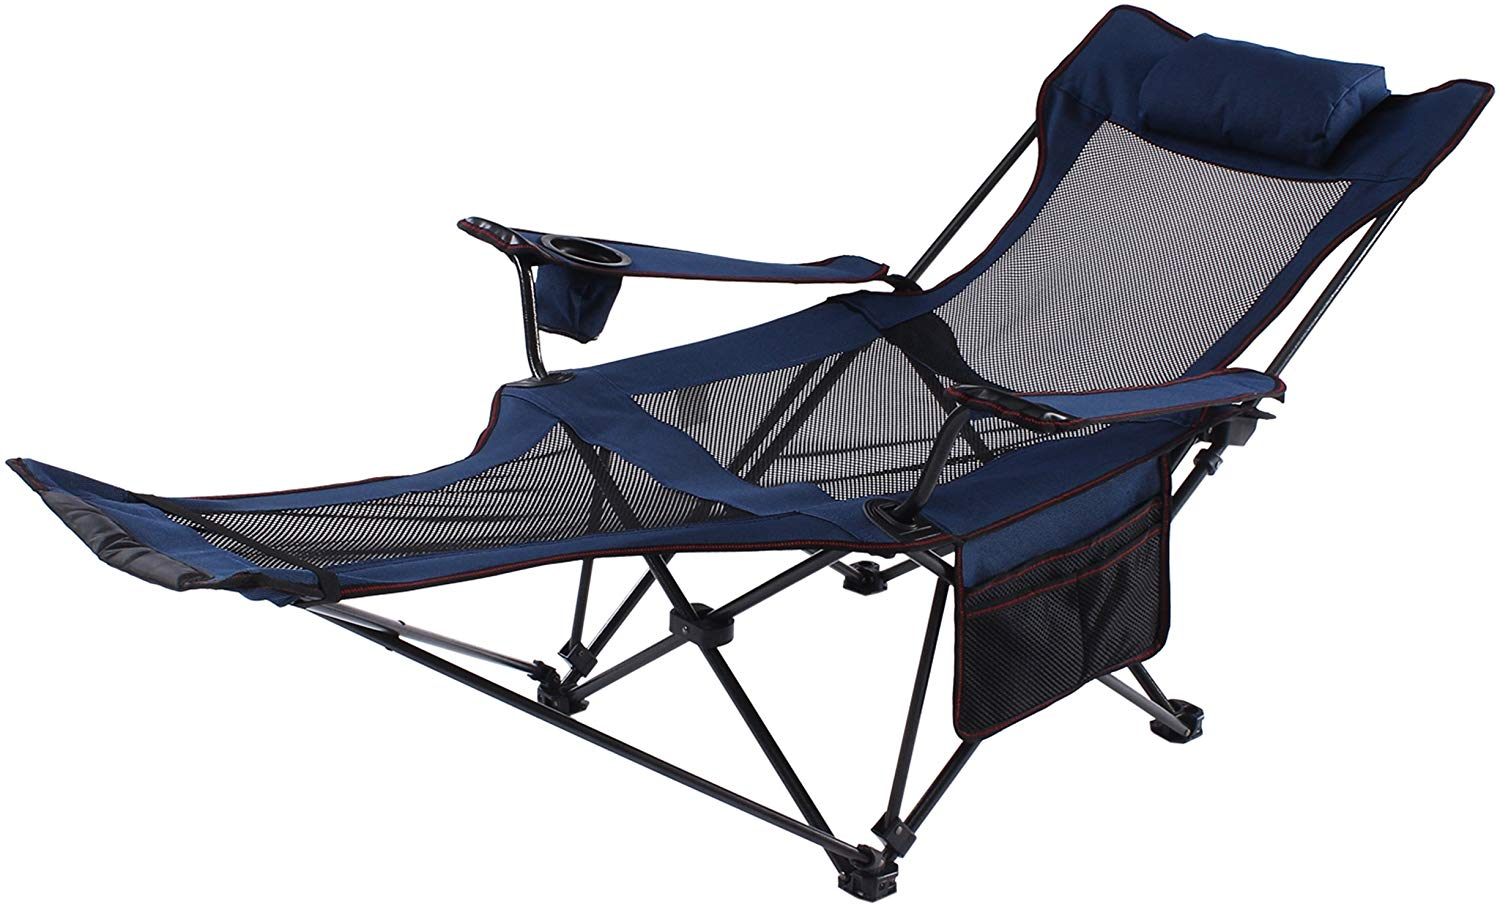 Top 10 Best Reclining Camping Chairs 2021 Reviews 5